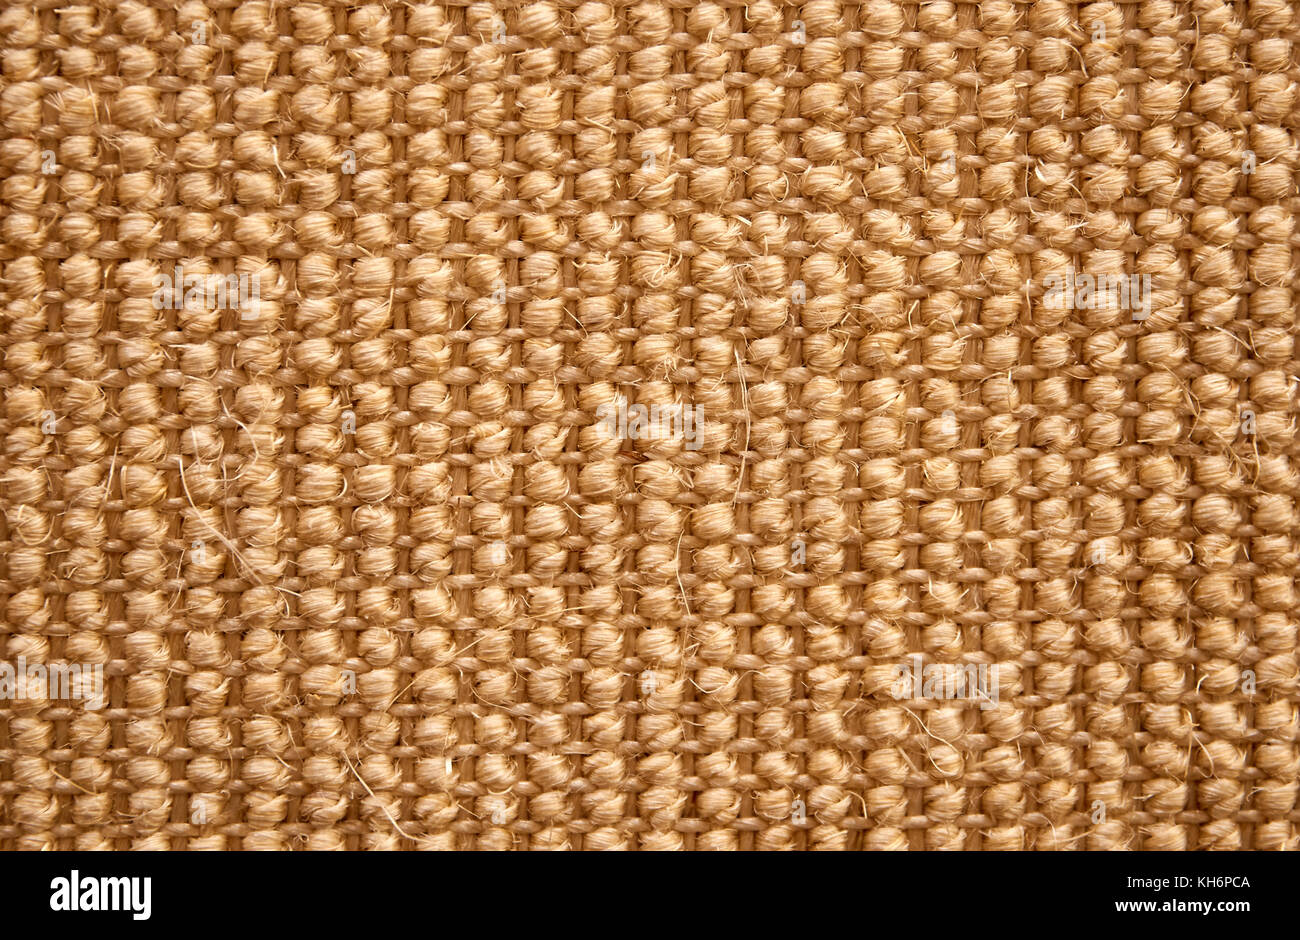 Vintage Teppich River Sisal Carpet Stock Photos And Sisal Carpet Stock Images Alamy